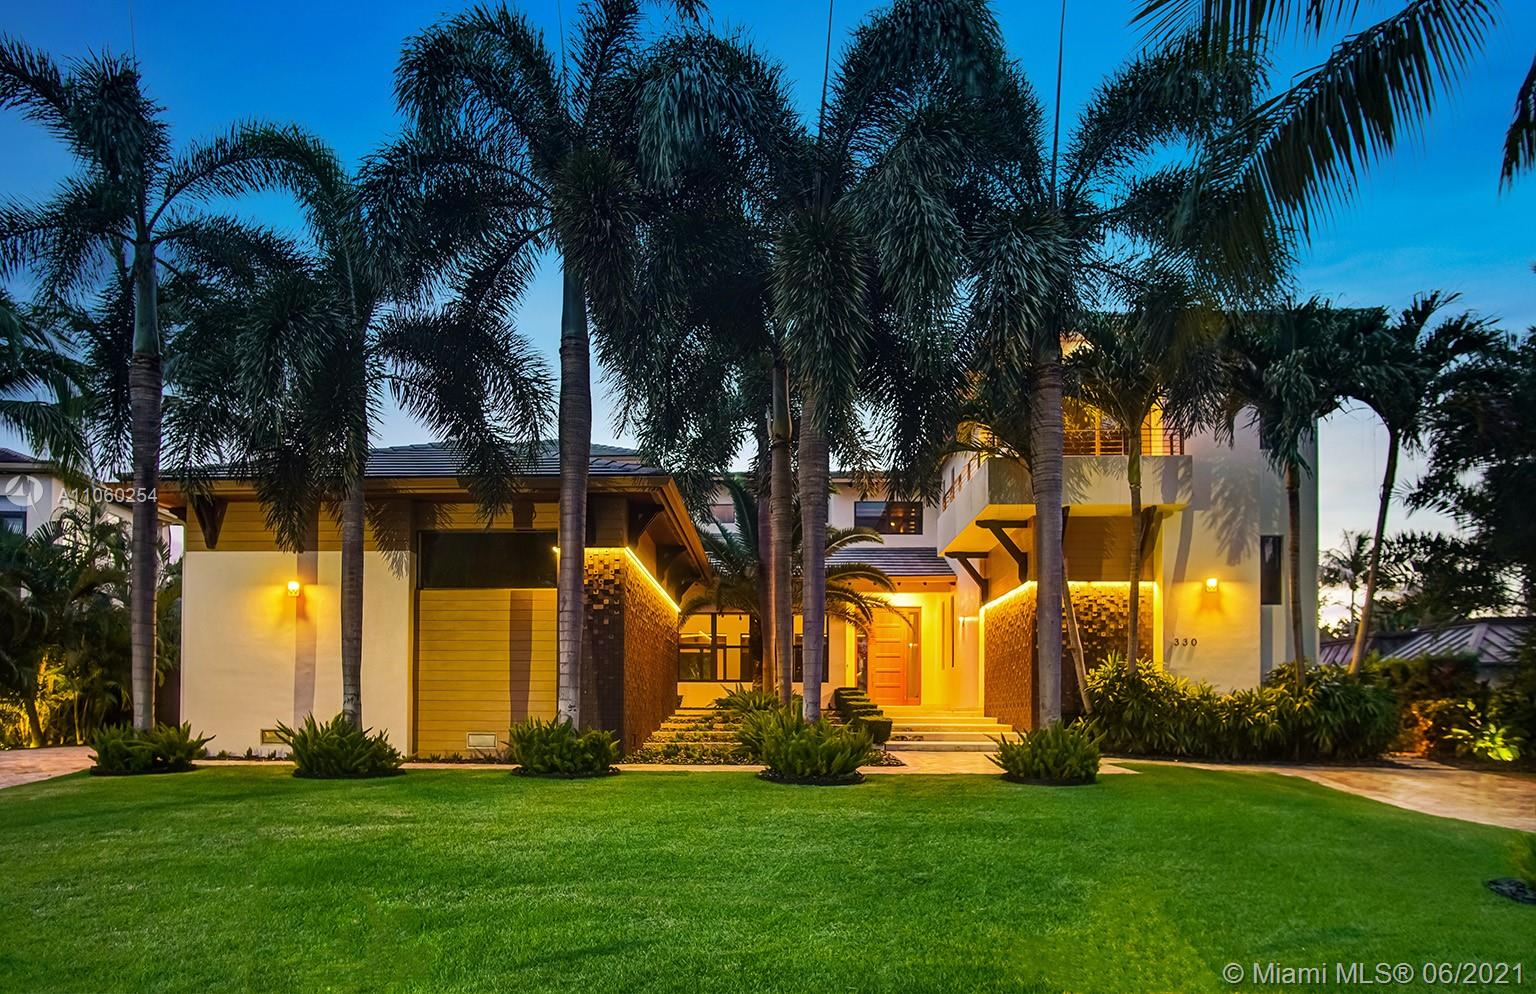 """330 Caribbean is a High-end Balinese Modern Home which sits on an oversized 12,262 Sq Ft. lot just 4 blocks (A 4-minute walk) from the beach and across the street from the Village Green Park. This 5,528 Sq Ft under air home with 2 car garage (not counted in the square footage) exudes quality not found in any builder """"spec"""" home on the Key. The 6 Bedroom 7 full bath home (inclusive of a separate nannies quarters) has refinished rich dark woods throughout and was just completely updated inside and out. From a matte finished sleek bath and hardware to new Italian """"Tecla"""" vanities in select bathrooms, refinished woods and fresh matte white finished paint compliment the homes modern meets Balinese feel.  See proximity map, drone footage and 3D home tour on the web at 330Caribbean_Dot_Com"""